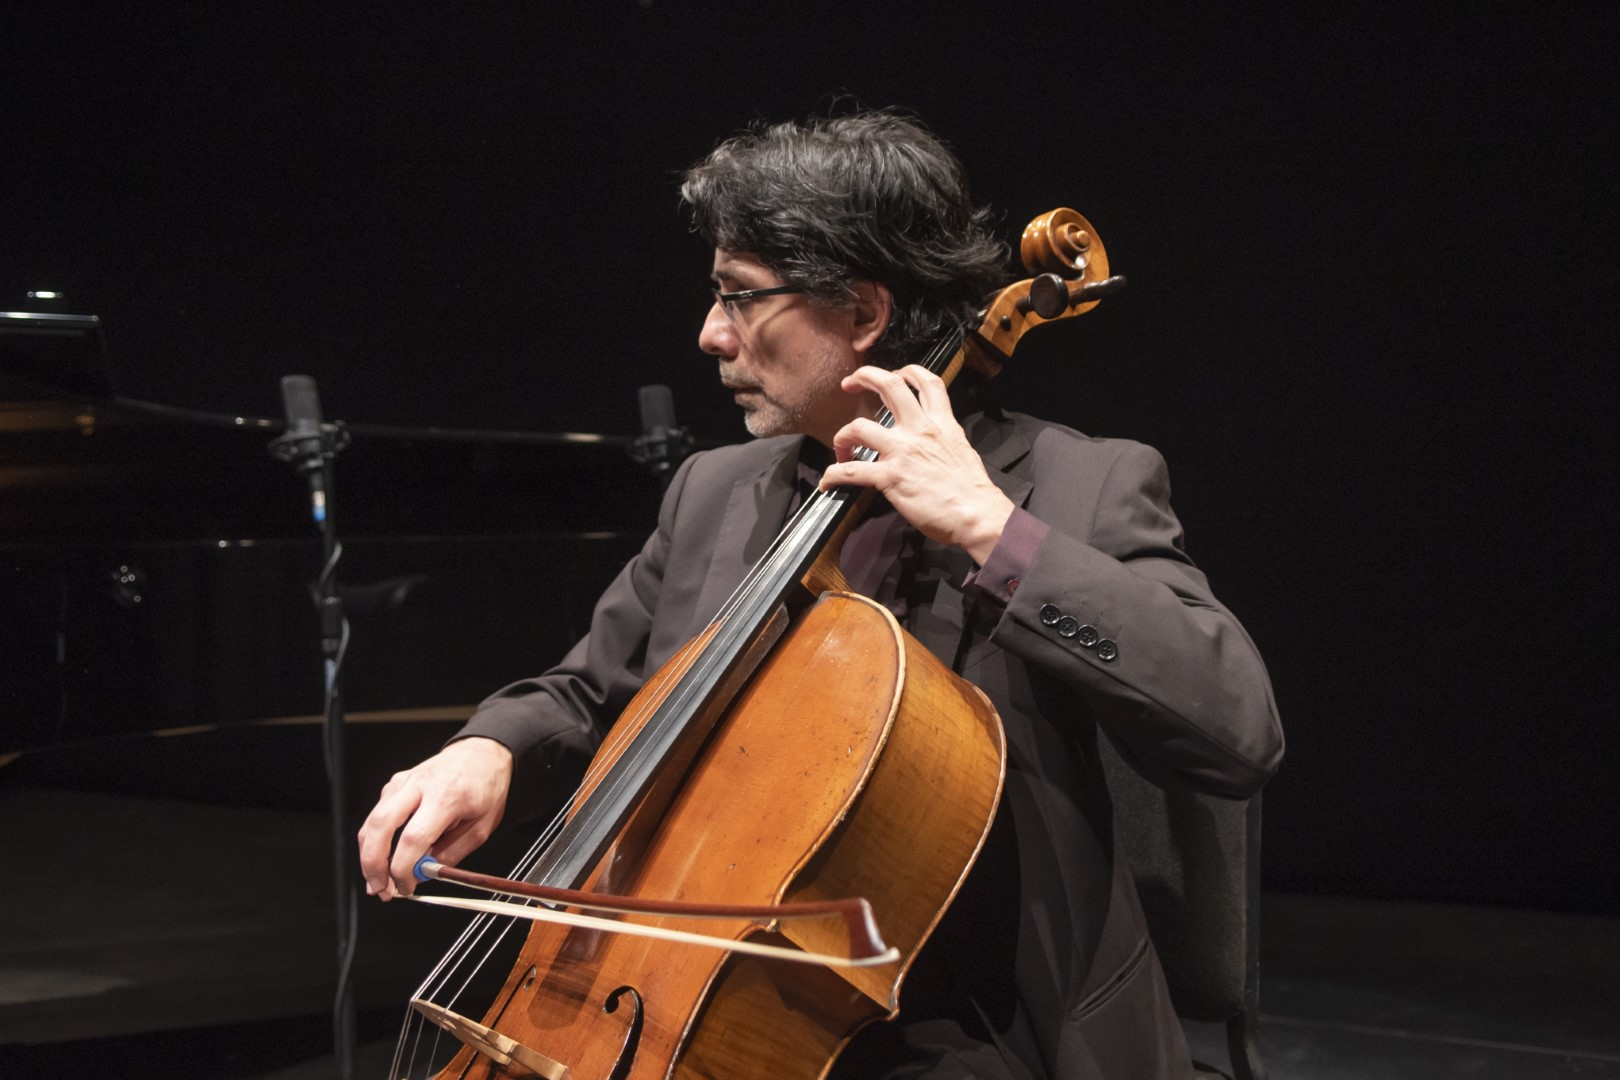 Celso López